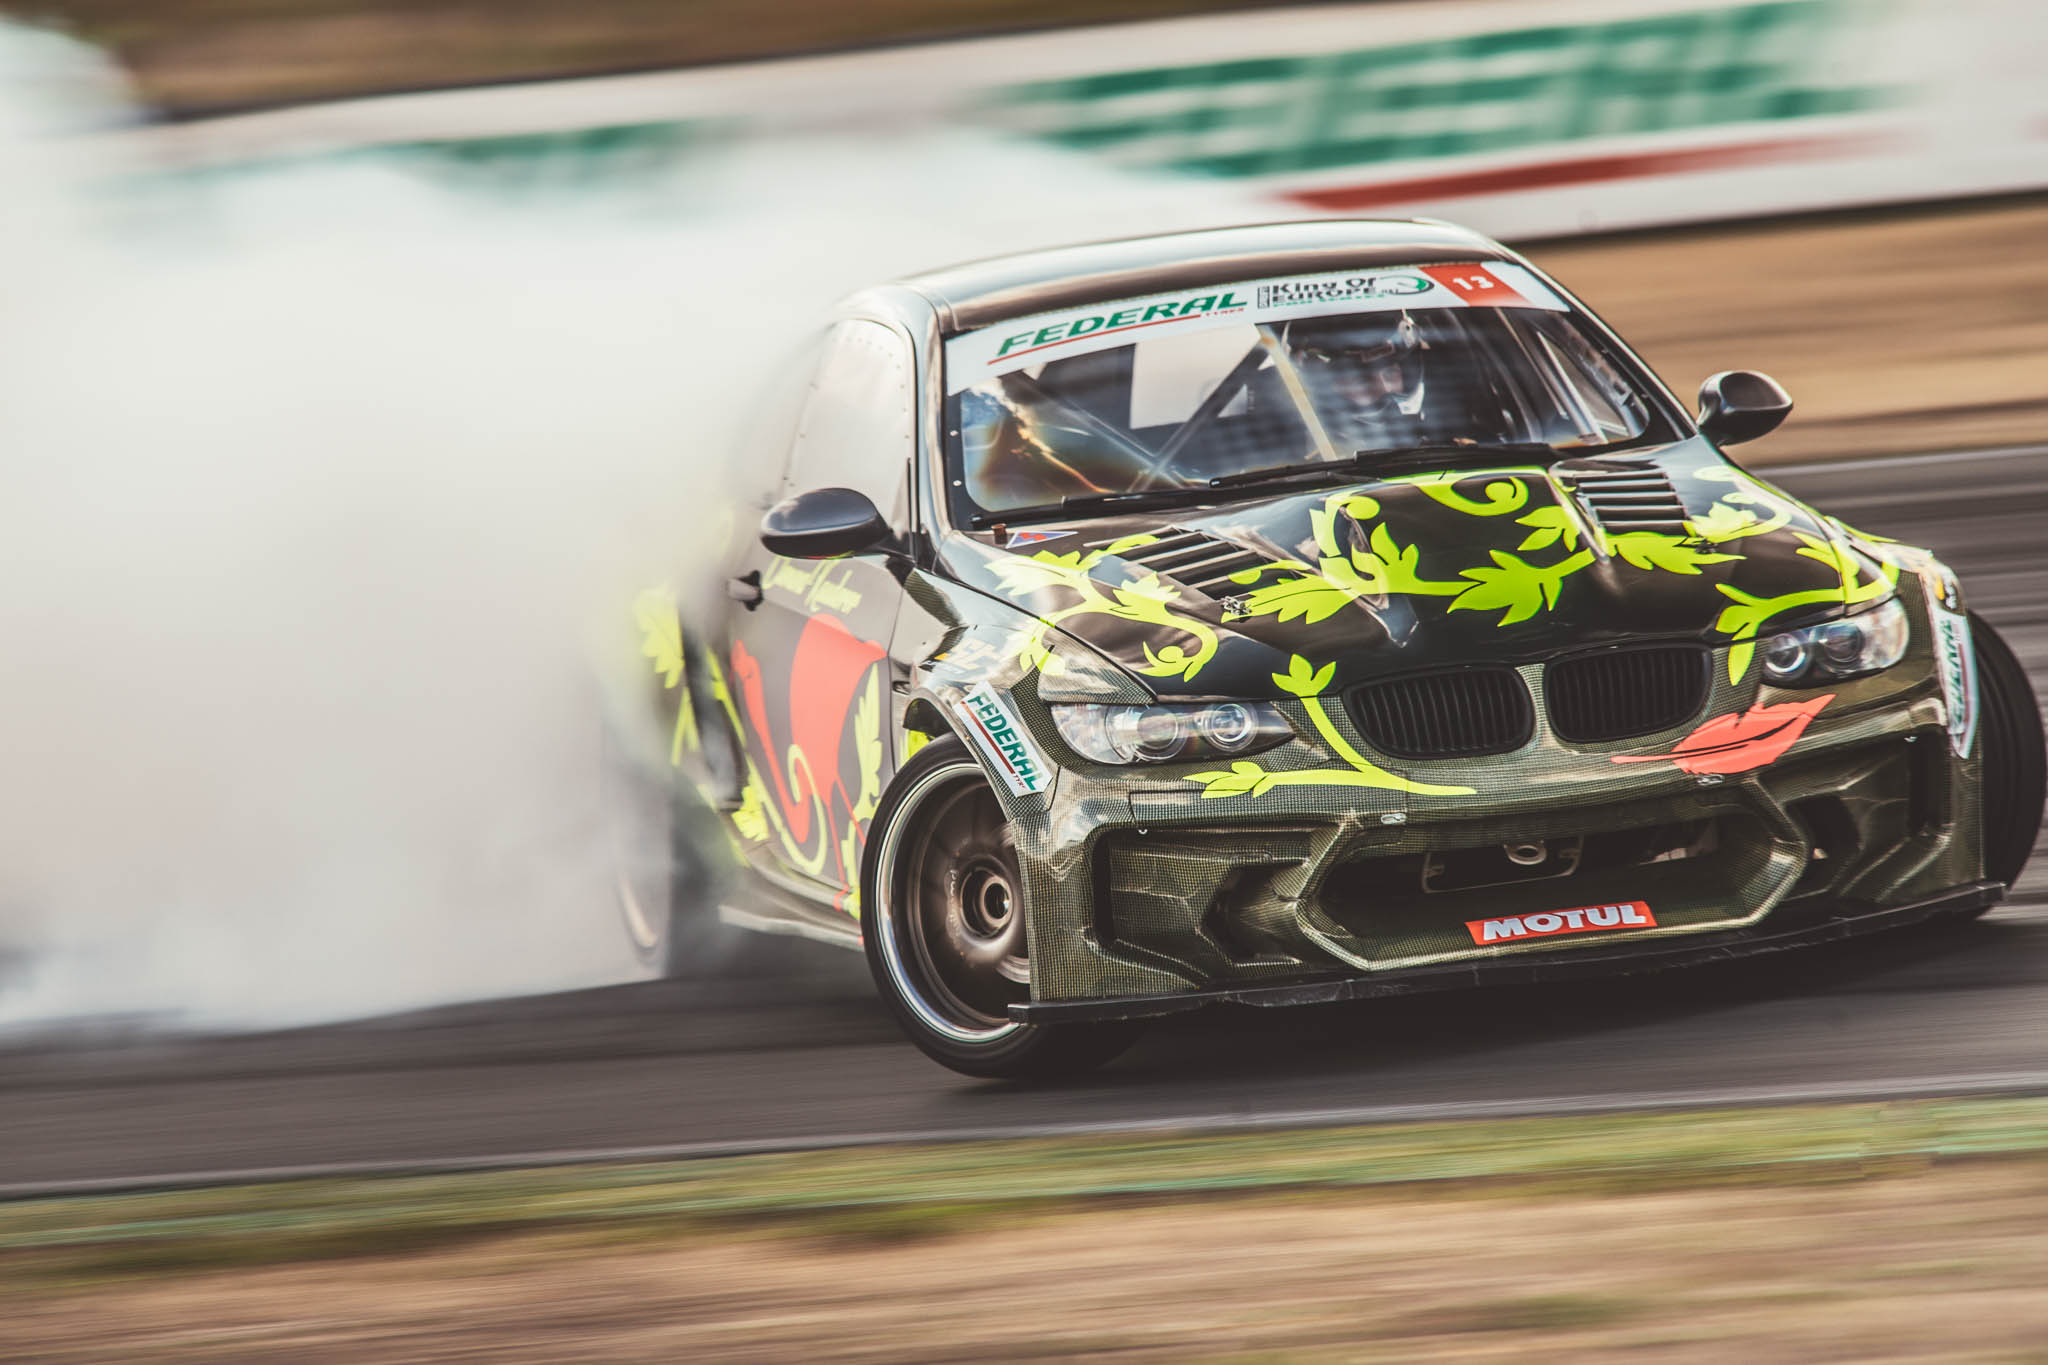 MIKE PROCUREUR HAS BEEN GROWING HIS DRIFT SERIES FOR 15 YEARS